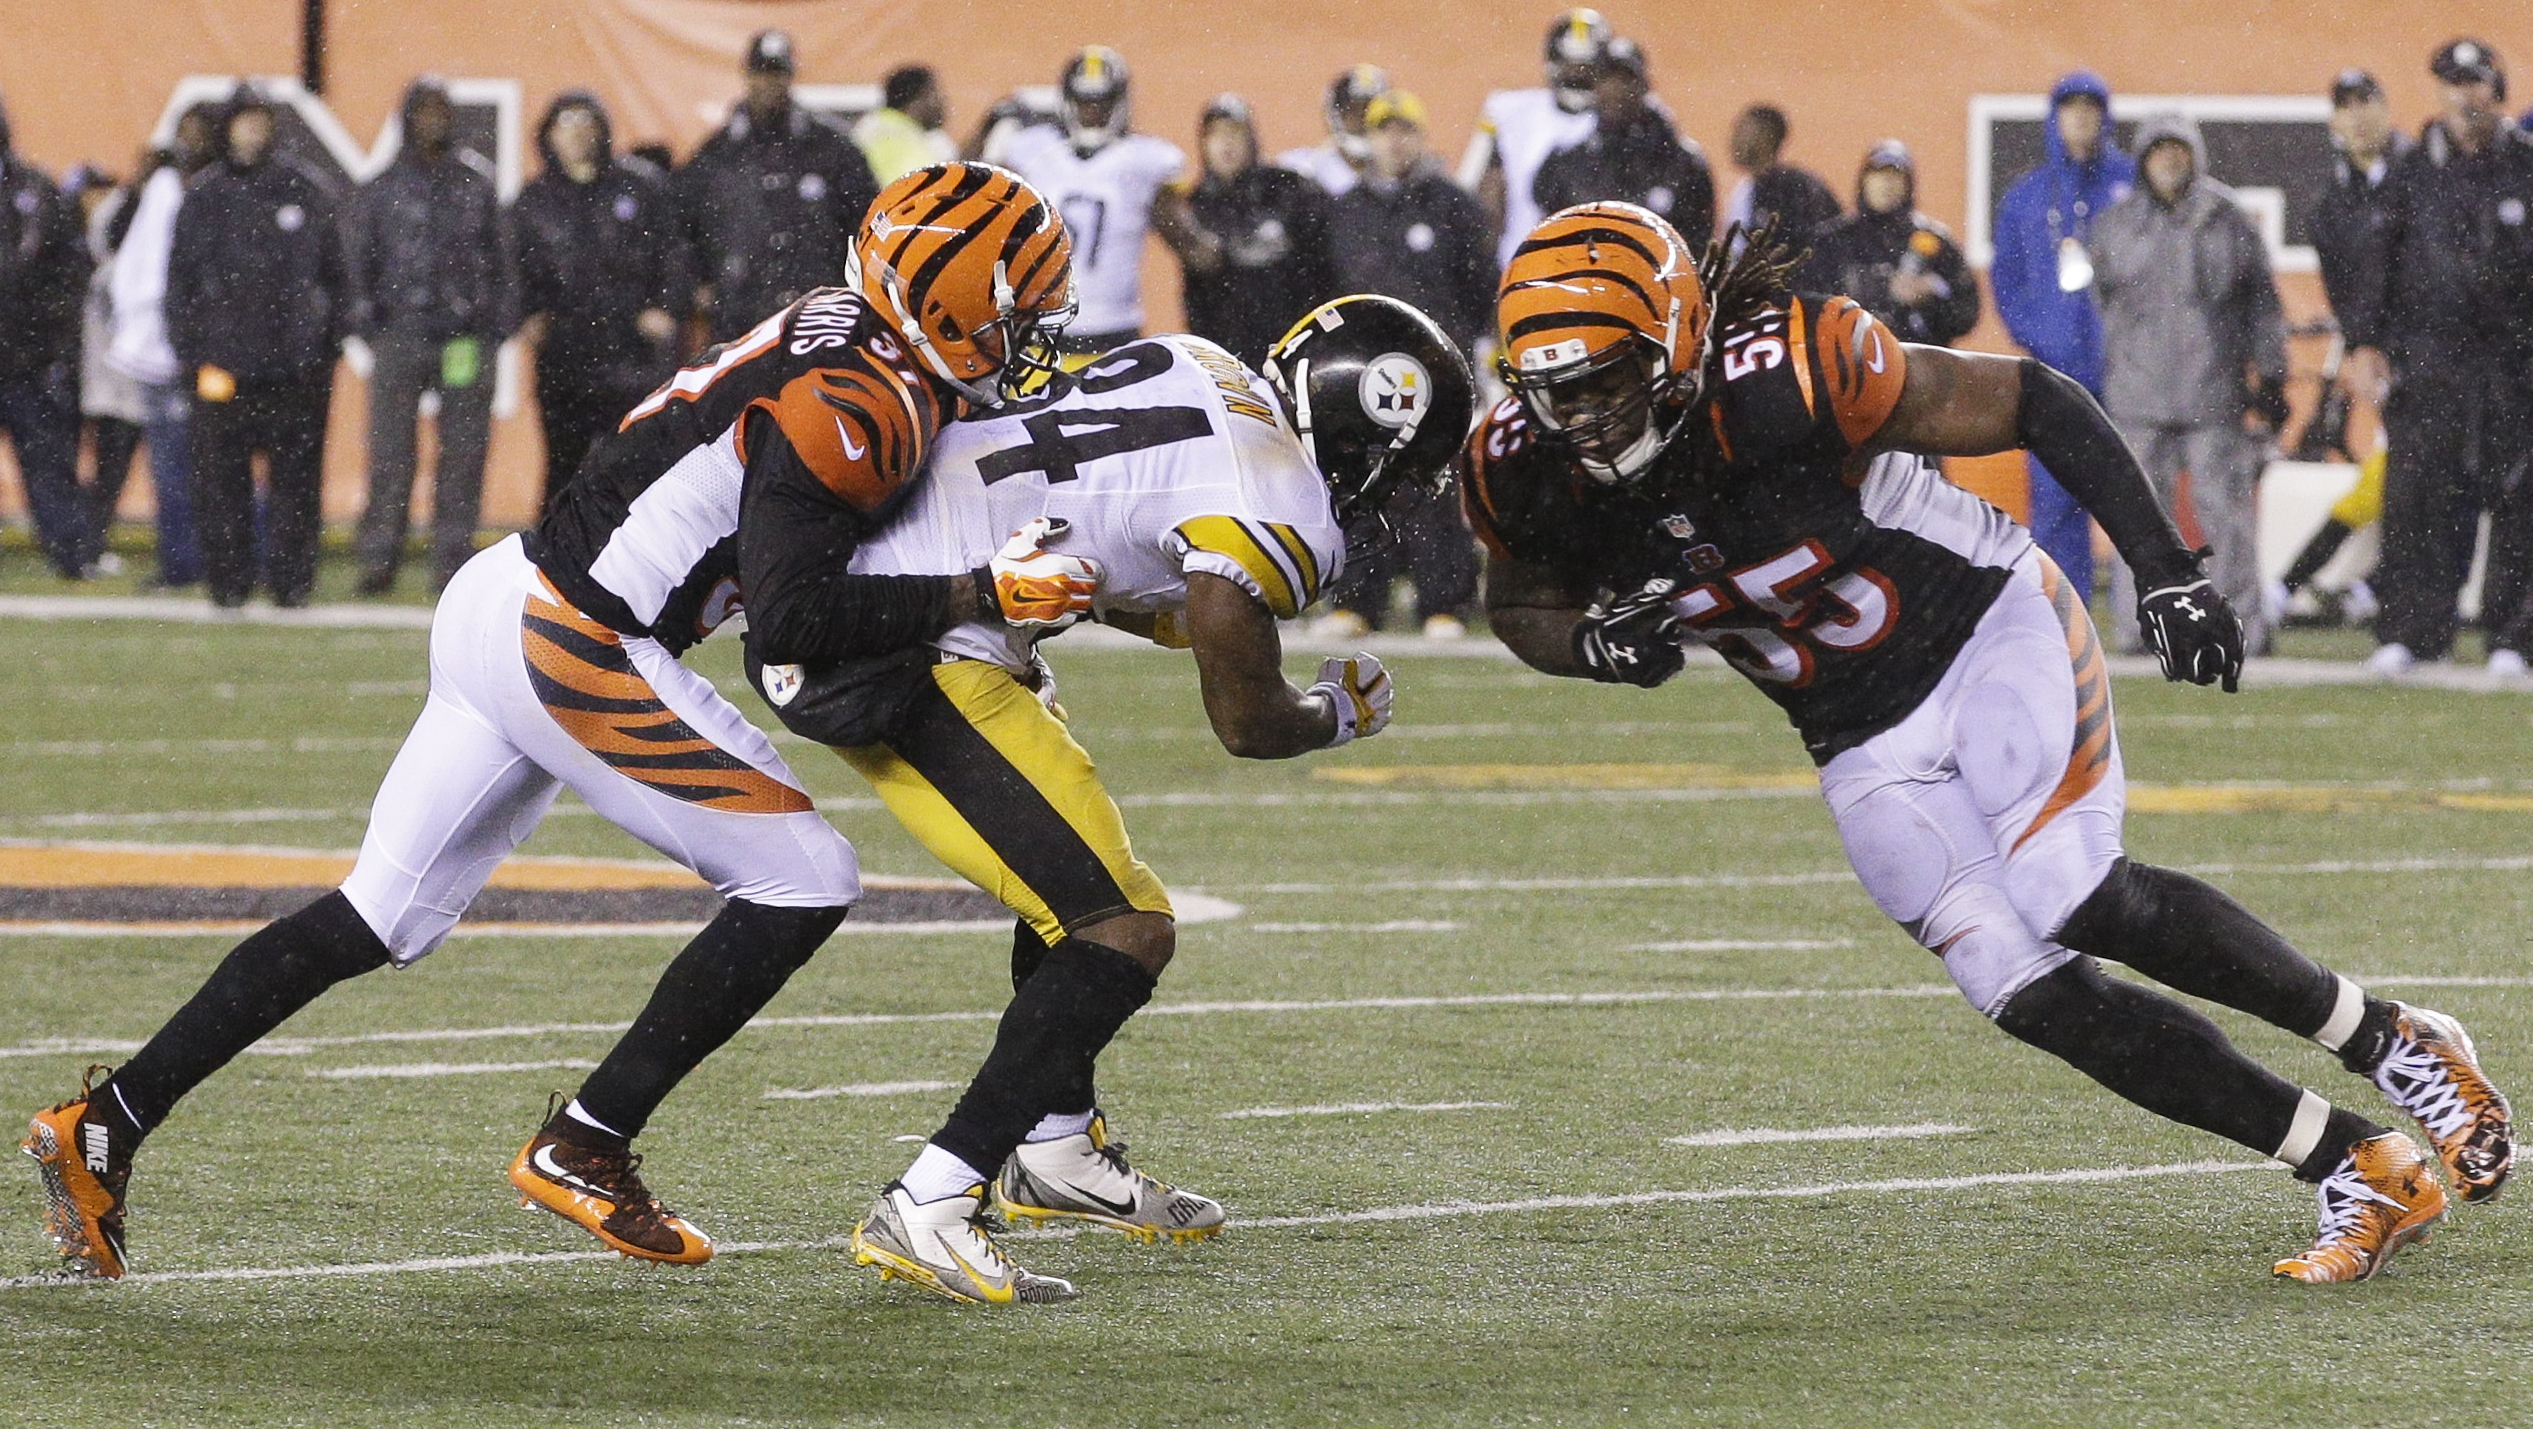 FILE - In this Jan. 10, 2016, file photo, Cincinnati Bengals' Vontaze Burfict (55), right, runs into Pittsburgh Steelers' Antonio Brown (84) during the second half of an NFL wild-card playoff football game in Cincinnati. Burfict was called for a penalty o